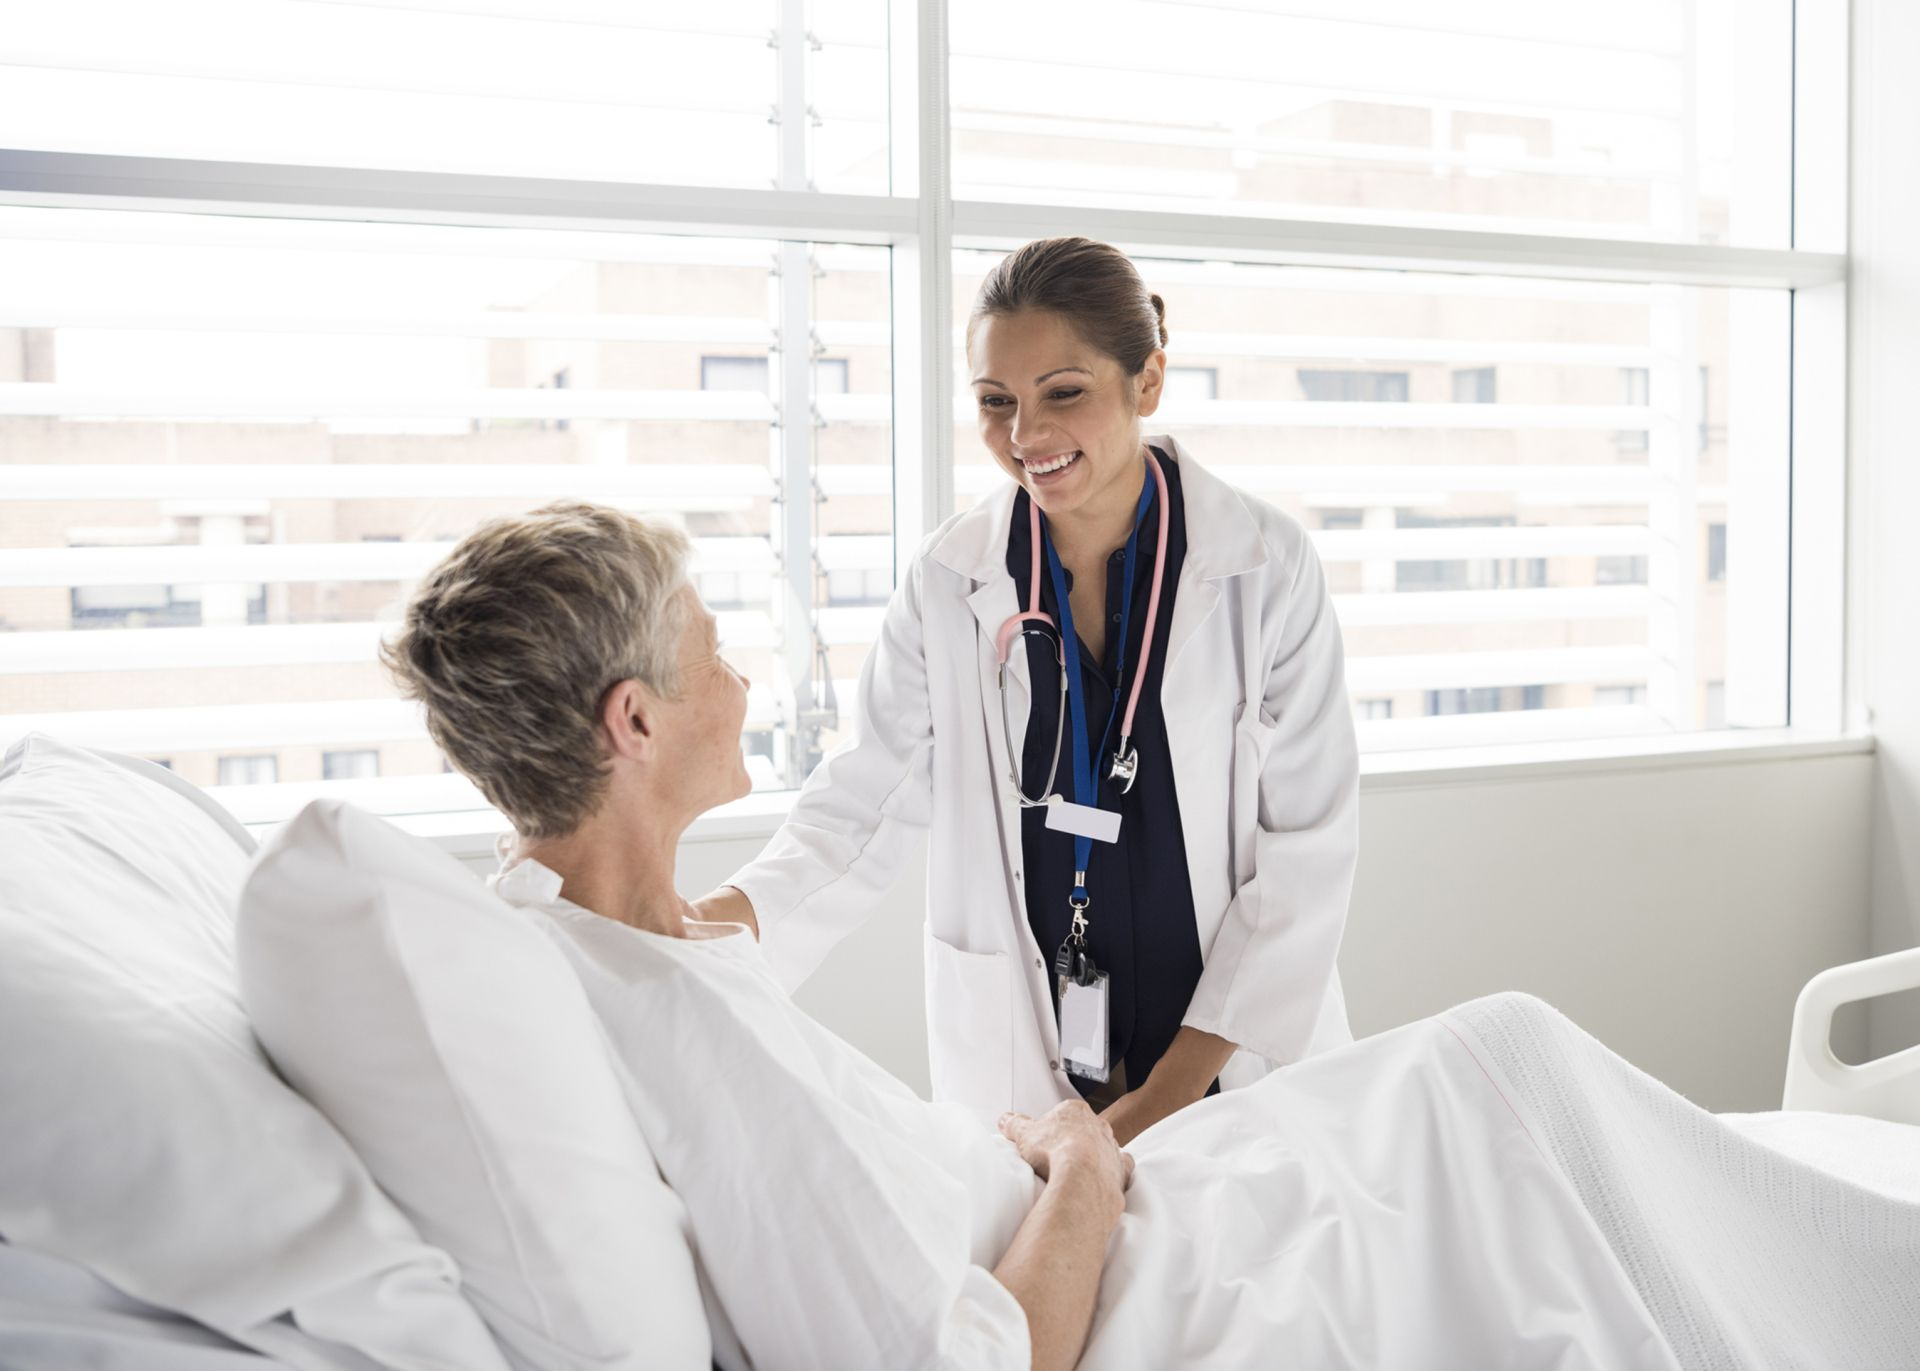 Senior woman in hospital bed listening to attractive female doctor. Medical professional caring for female patient in hospital bed.